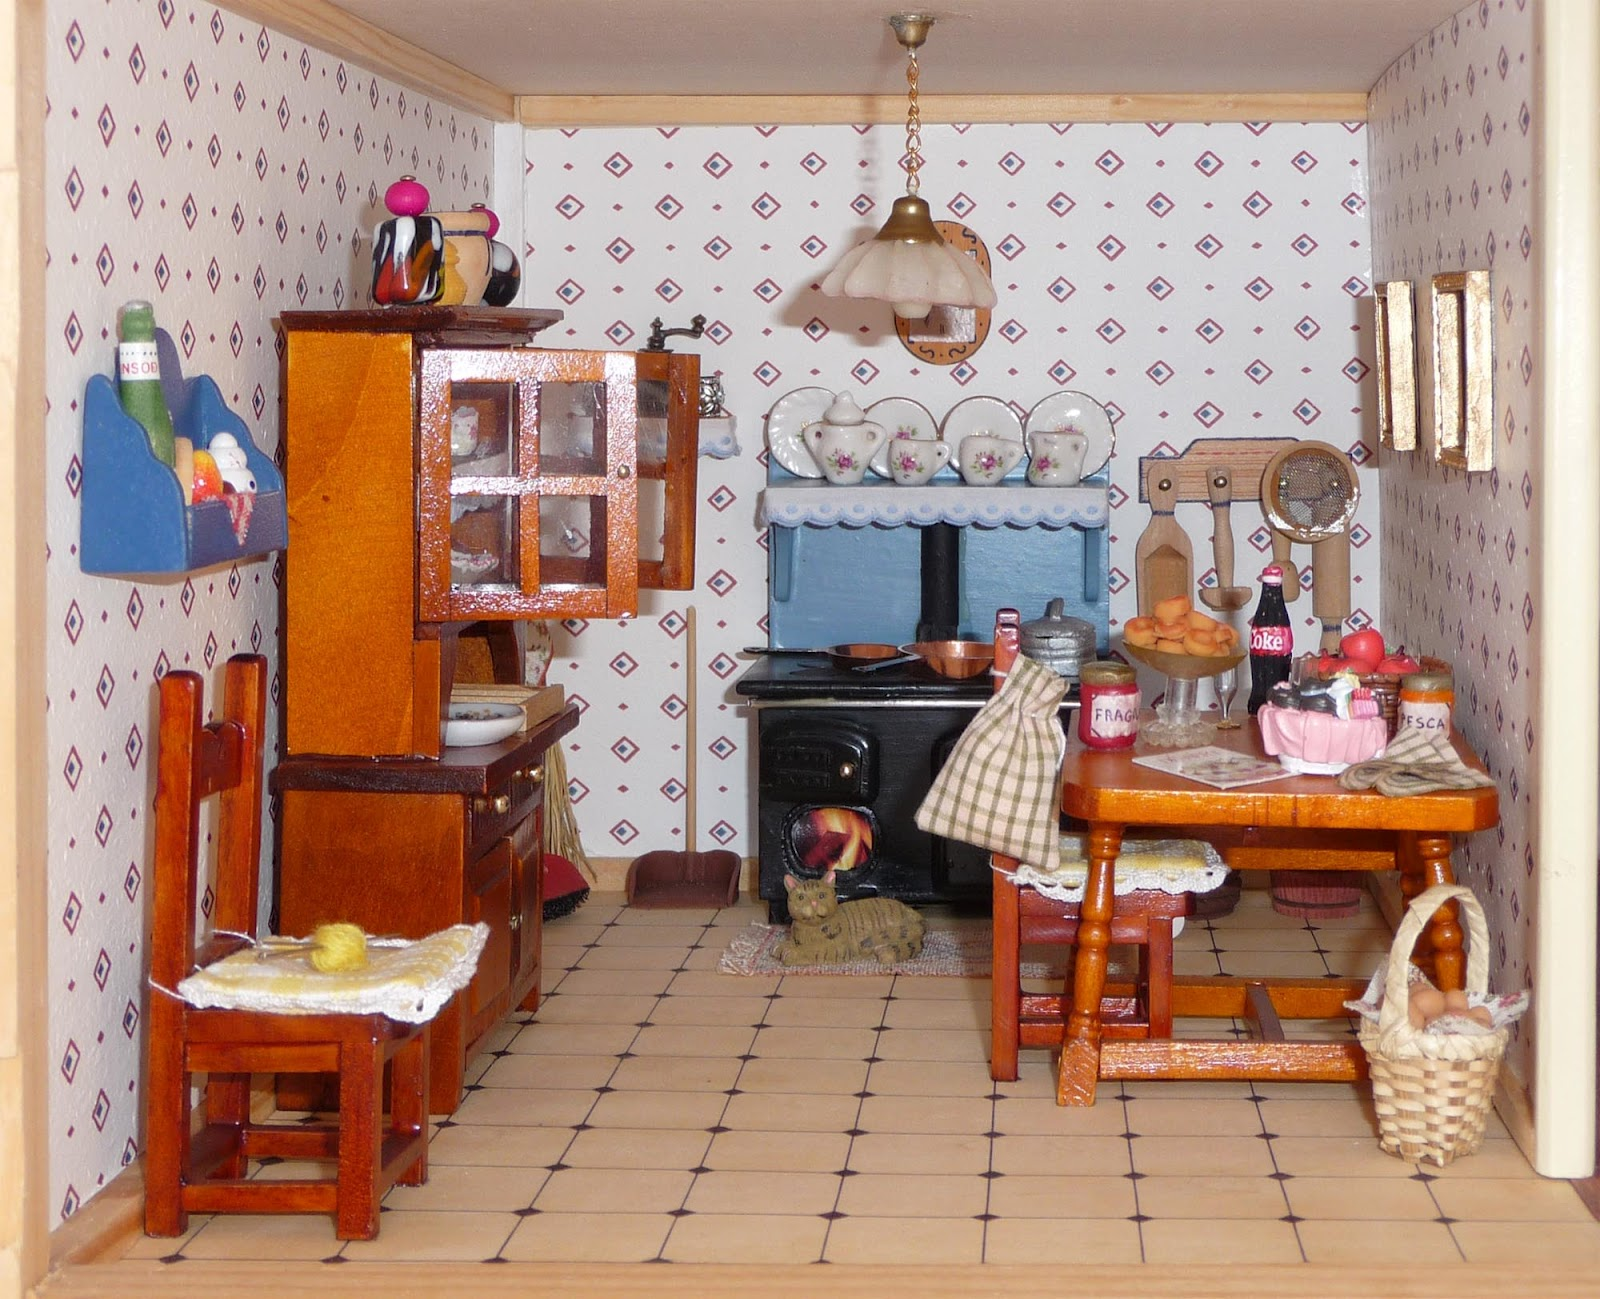 Morandi Sisters Microworld: Villa Amelia Dollhouse - Kitchen